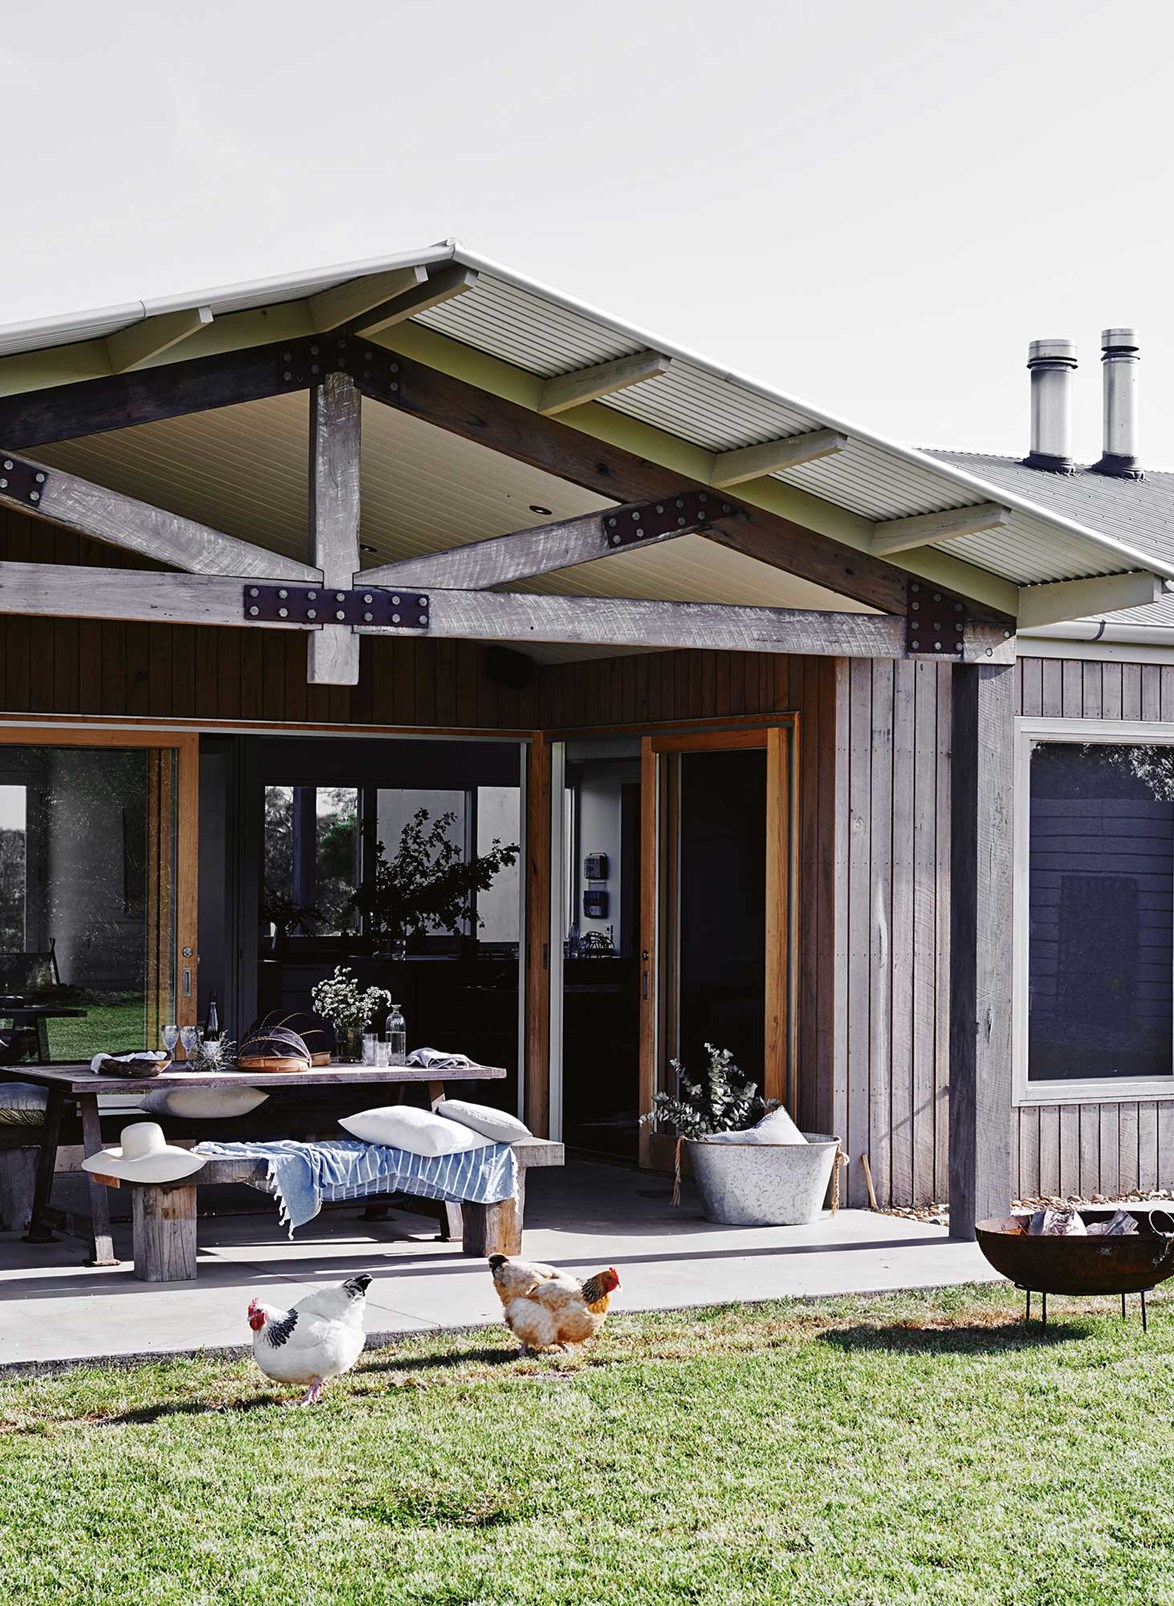 "Reclaimed timber frames an impressive back verandah at a [newly built home in Freshwater creek](https://www.homestolove.com.au/designer-dream-home-in-freshwater-creek-victoria-13657|target=""_blank""). A brood of chooks scan the lawn for signs of food. *Photo: Lisa Cohen / Stylist: Tess Newman-Morris*"